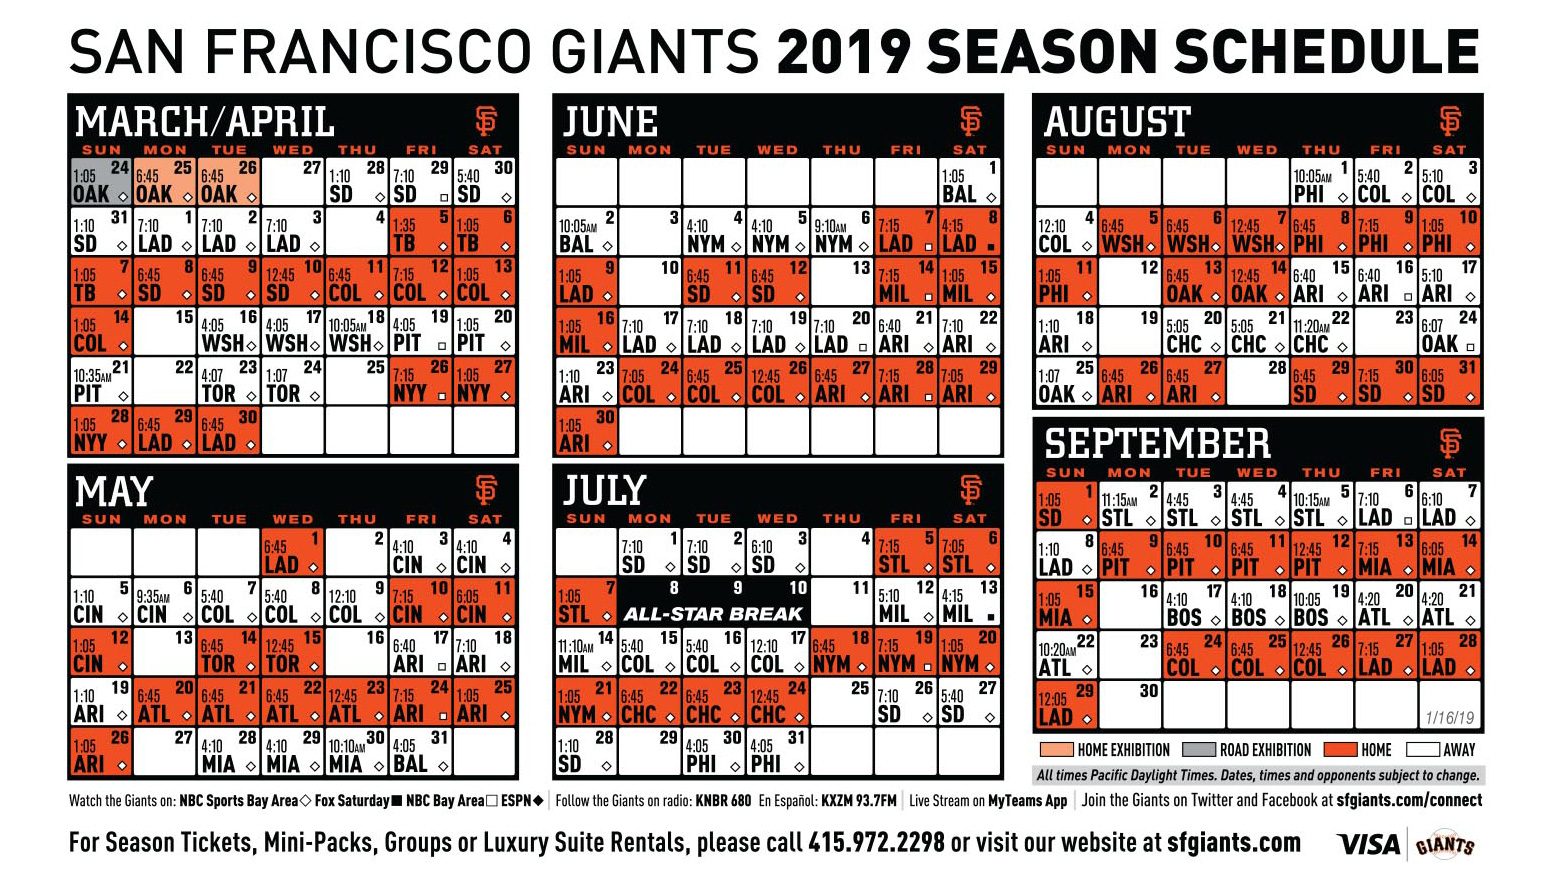 picture relating to Cincinnati Reds Printable Schedule known as Giants 2019 Printable Routine San Francisco Giants